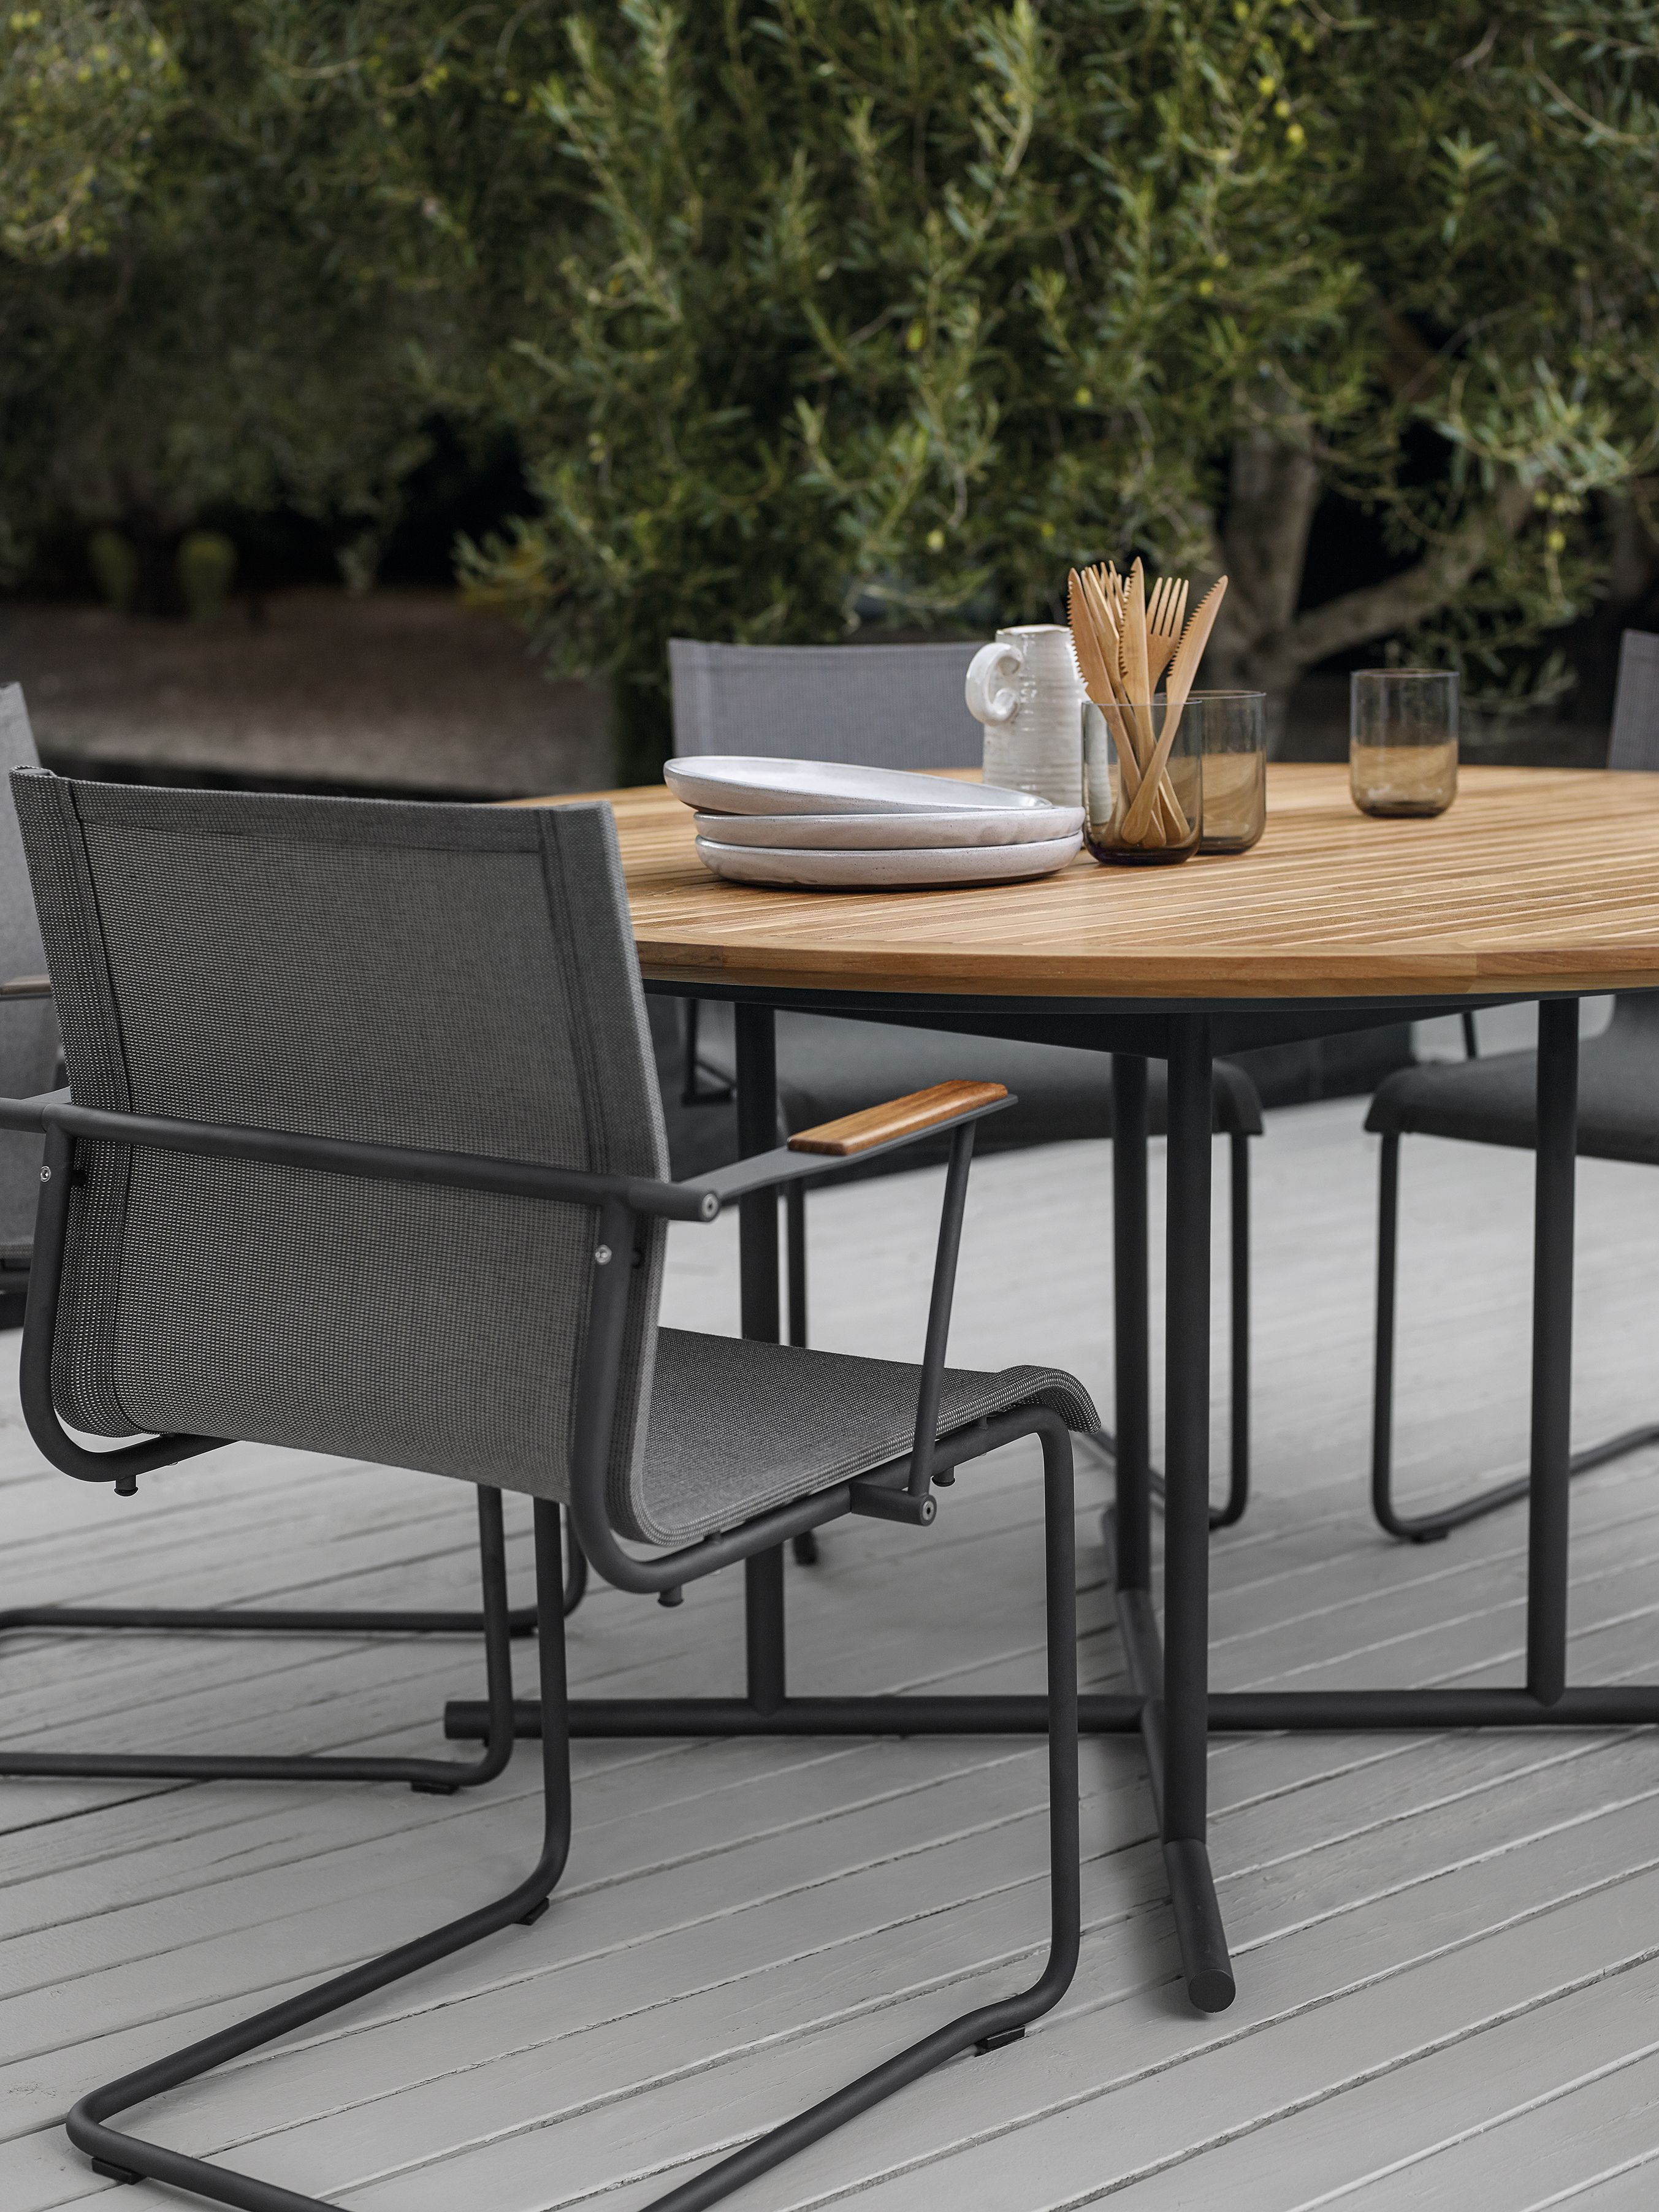 GLOSTER Sway chair | Whirl table | GLOSTER | Pinterest